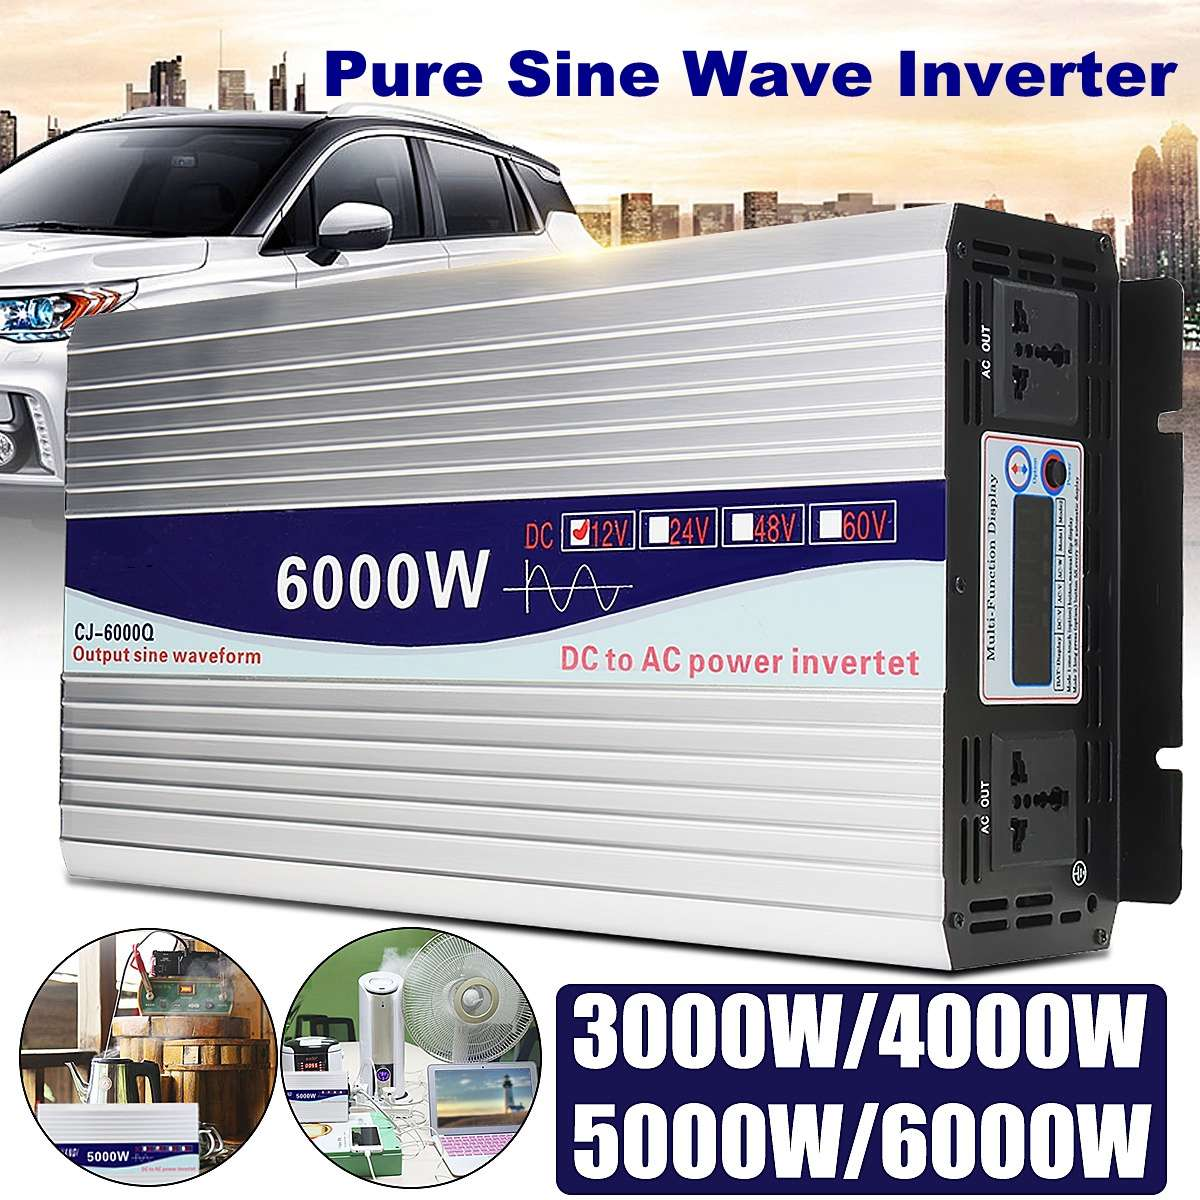 12 V/24 V zu AC 220 V 3000/4000/5000/6000 W <font><b>Inverter</b></font> Spannung transformator reine Sinus Welle Power <font><b>Inverter</b></font> Konverter Led-anzeige image